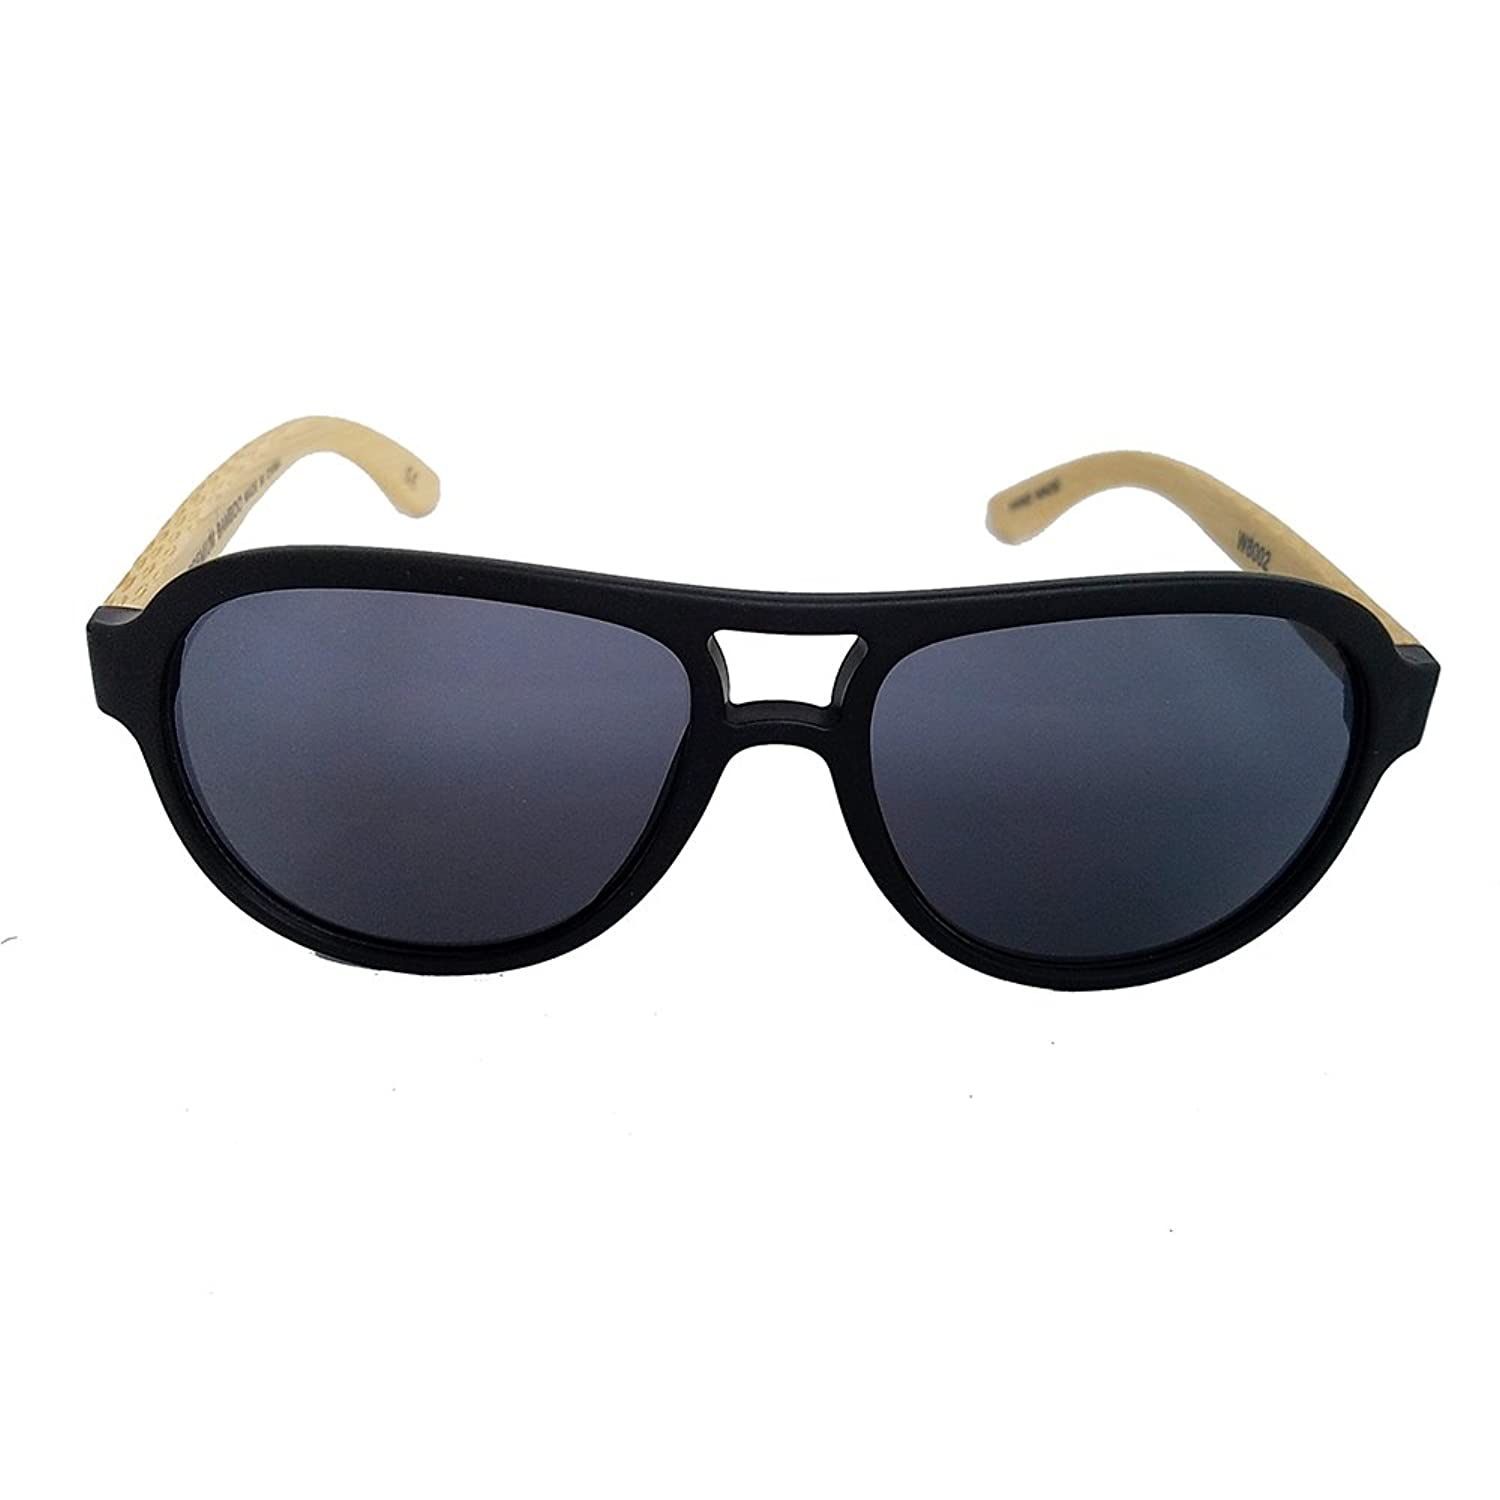 AnL Vision Handmade Bamboo Arms Fashion Sunglasses Unisex